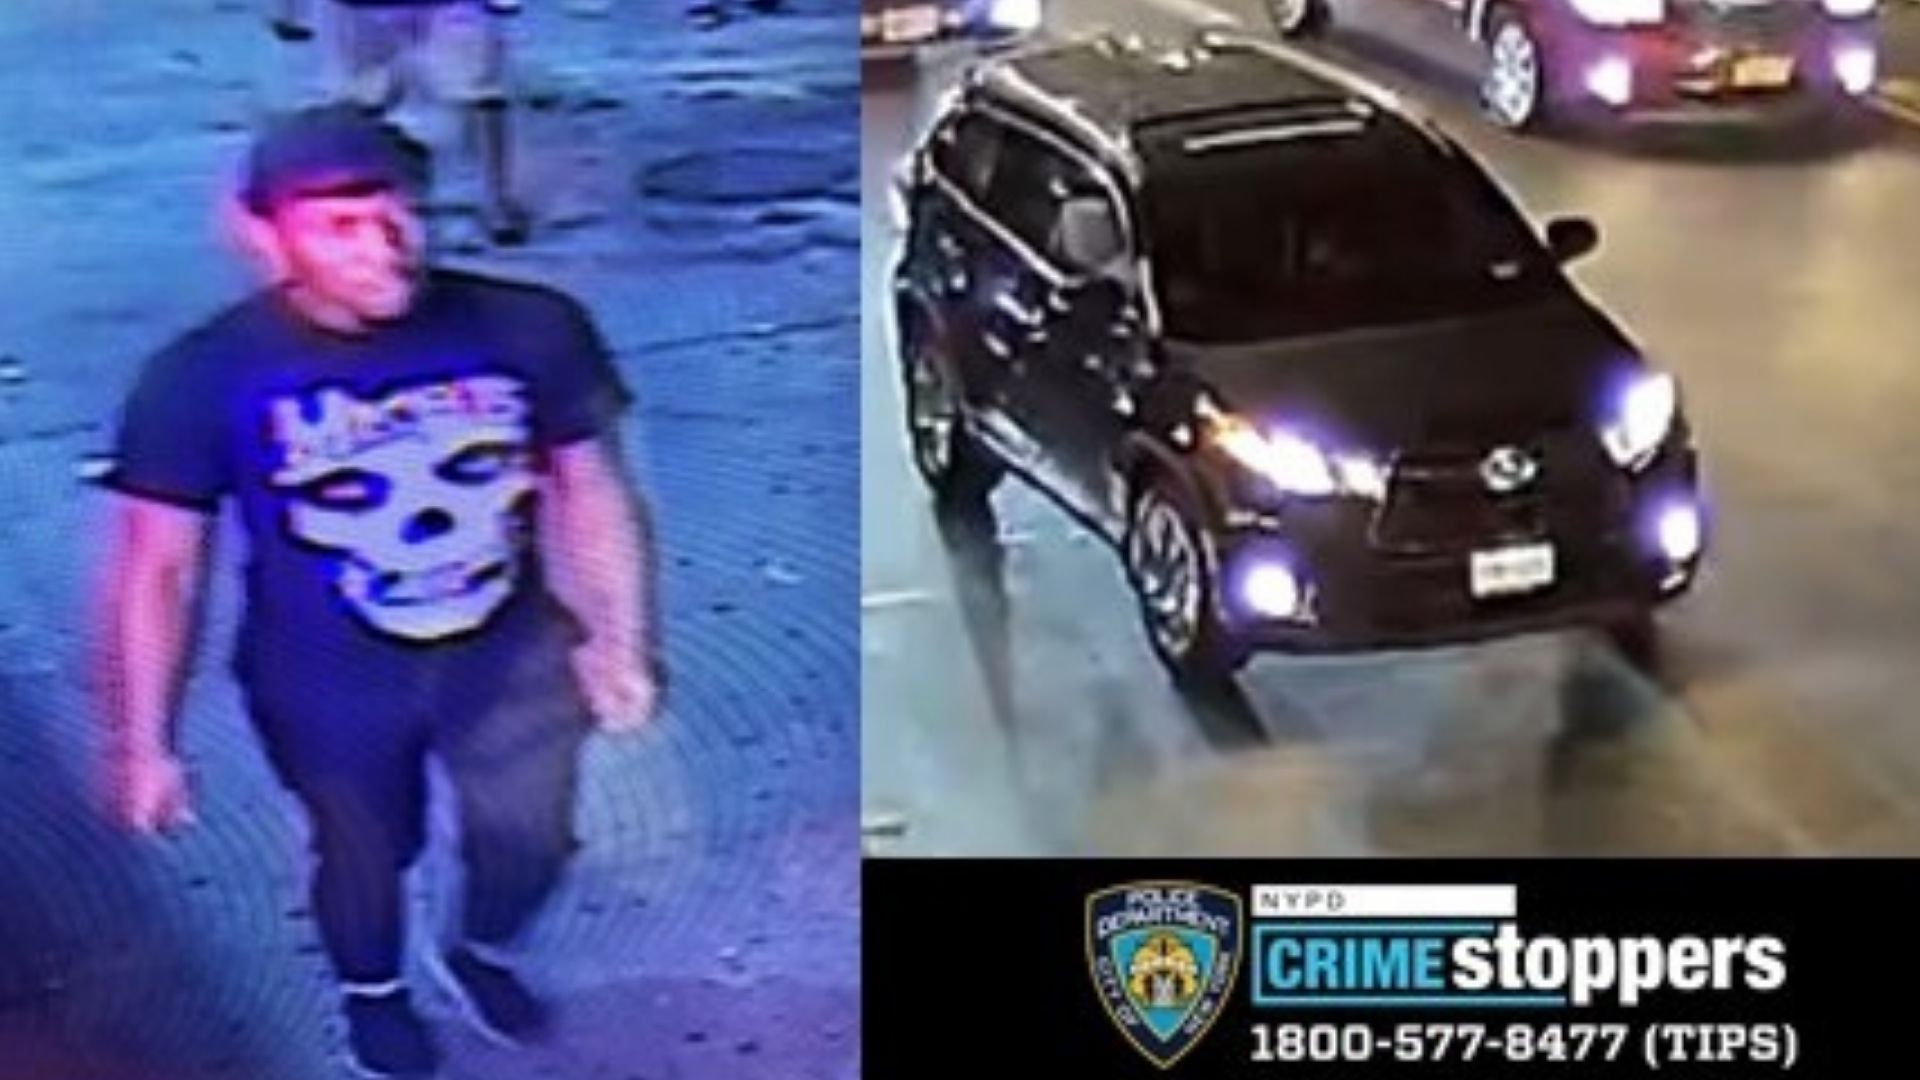 Suspect photo after 15-year-old boy shot in Inwood